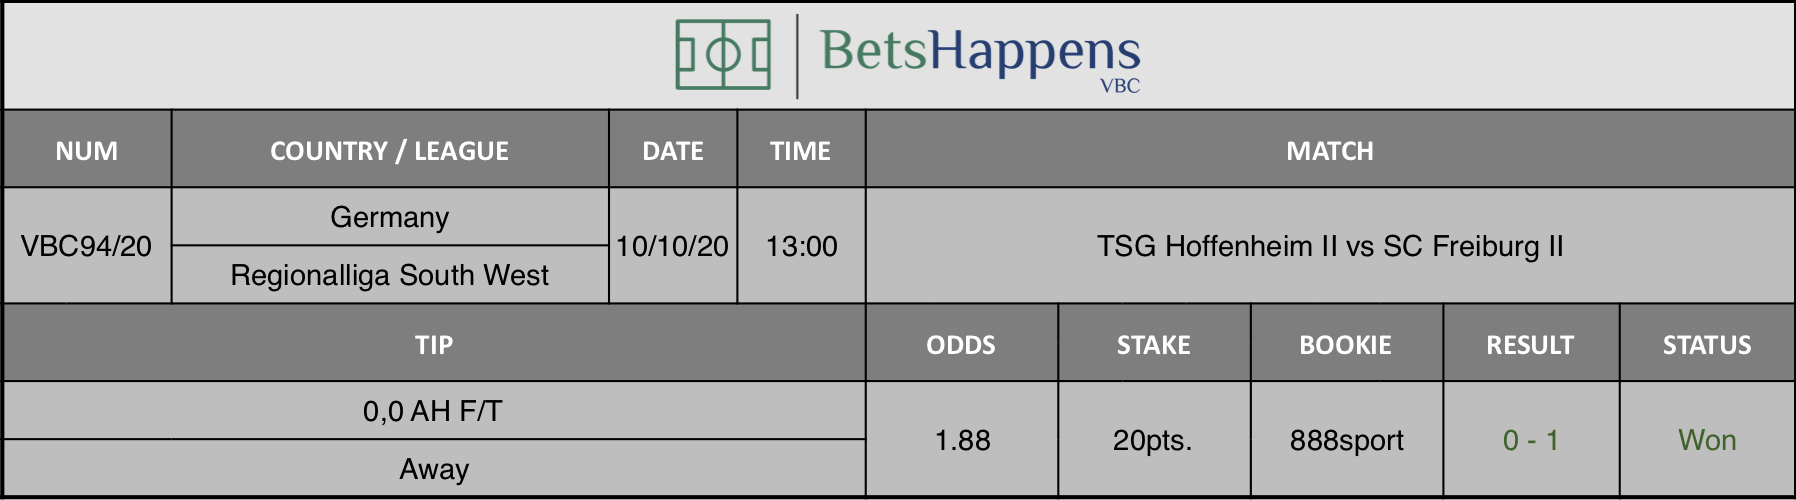 Results of our advice for the TSG Hoffenheim II vs SC Freiburg II match in which 0.0 AH F / T Away is recommended.